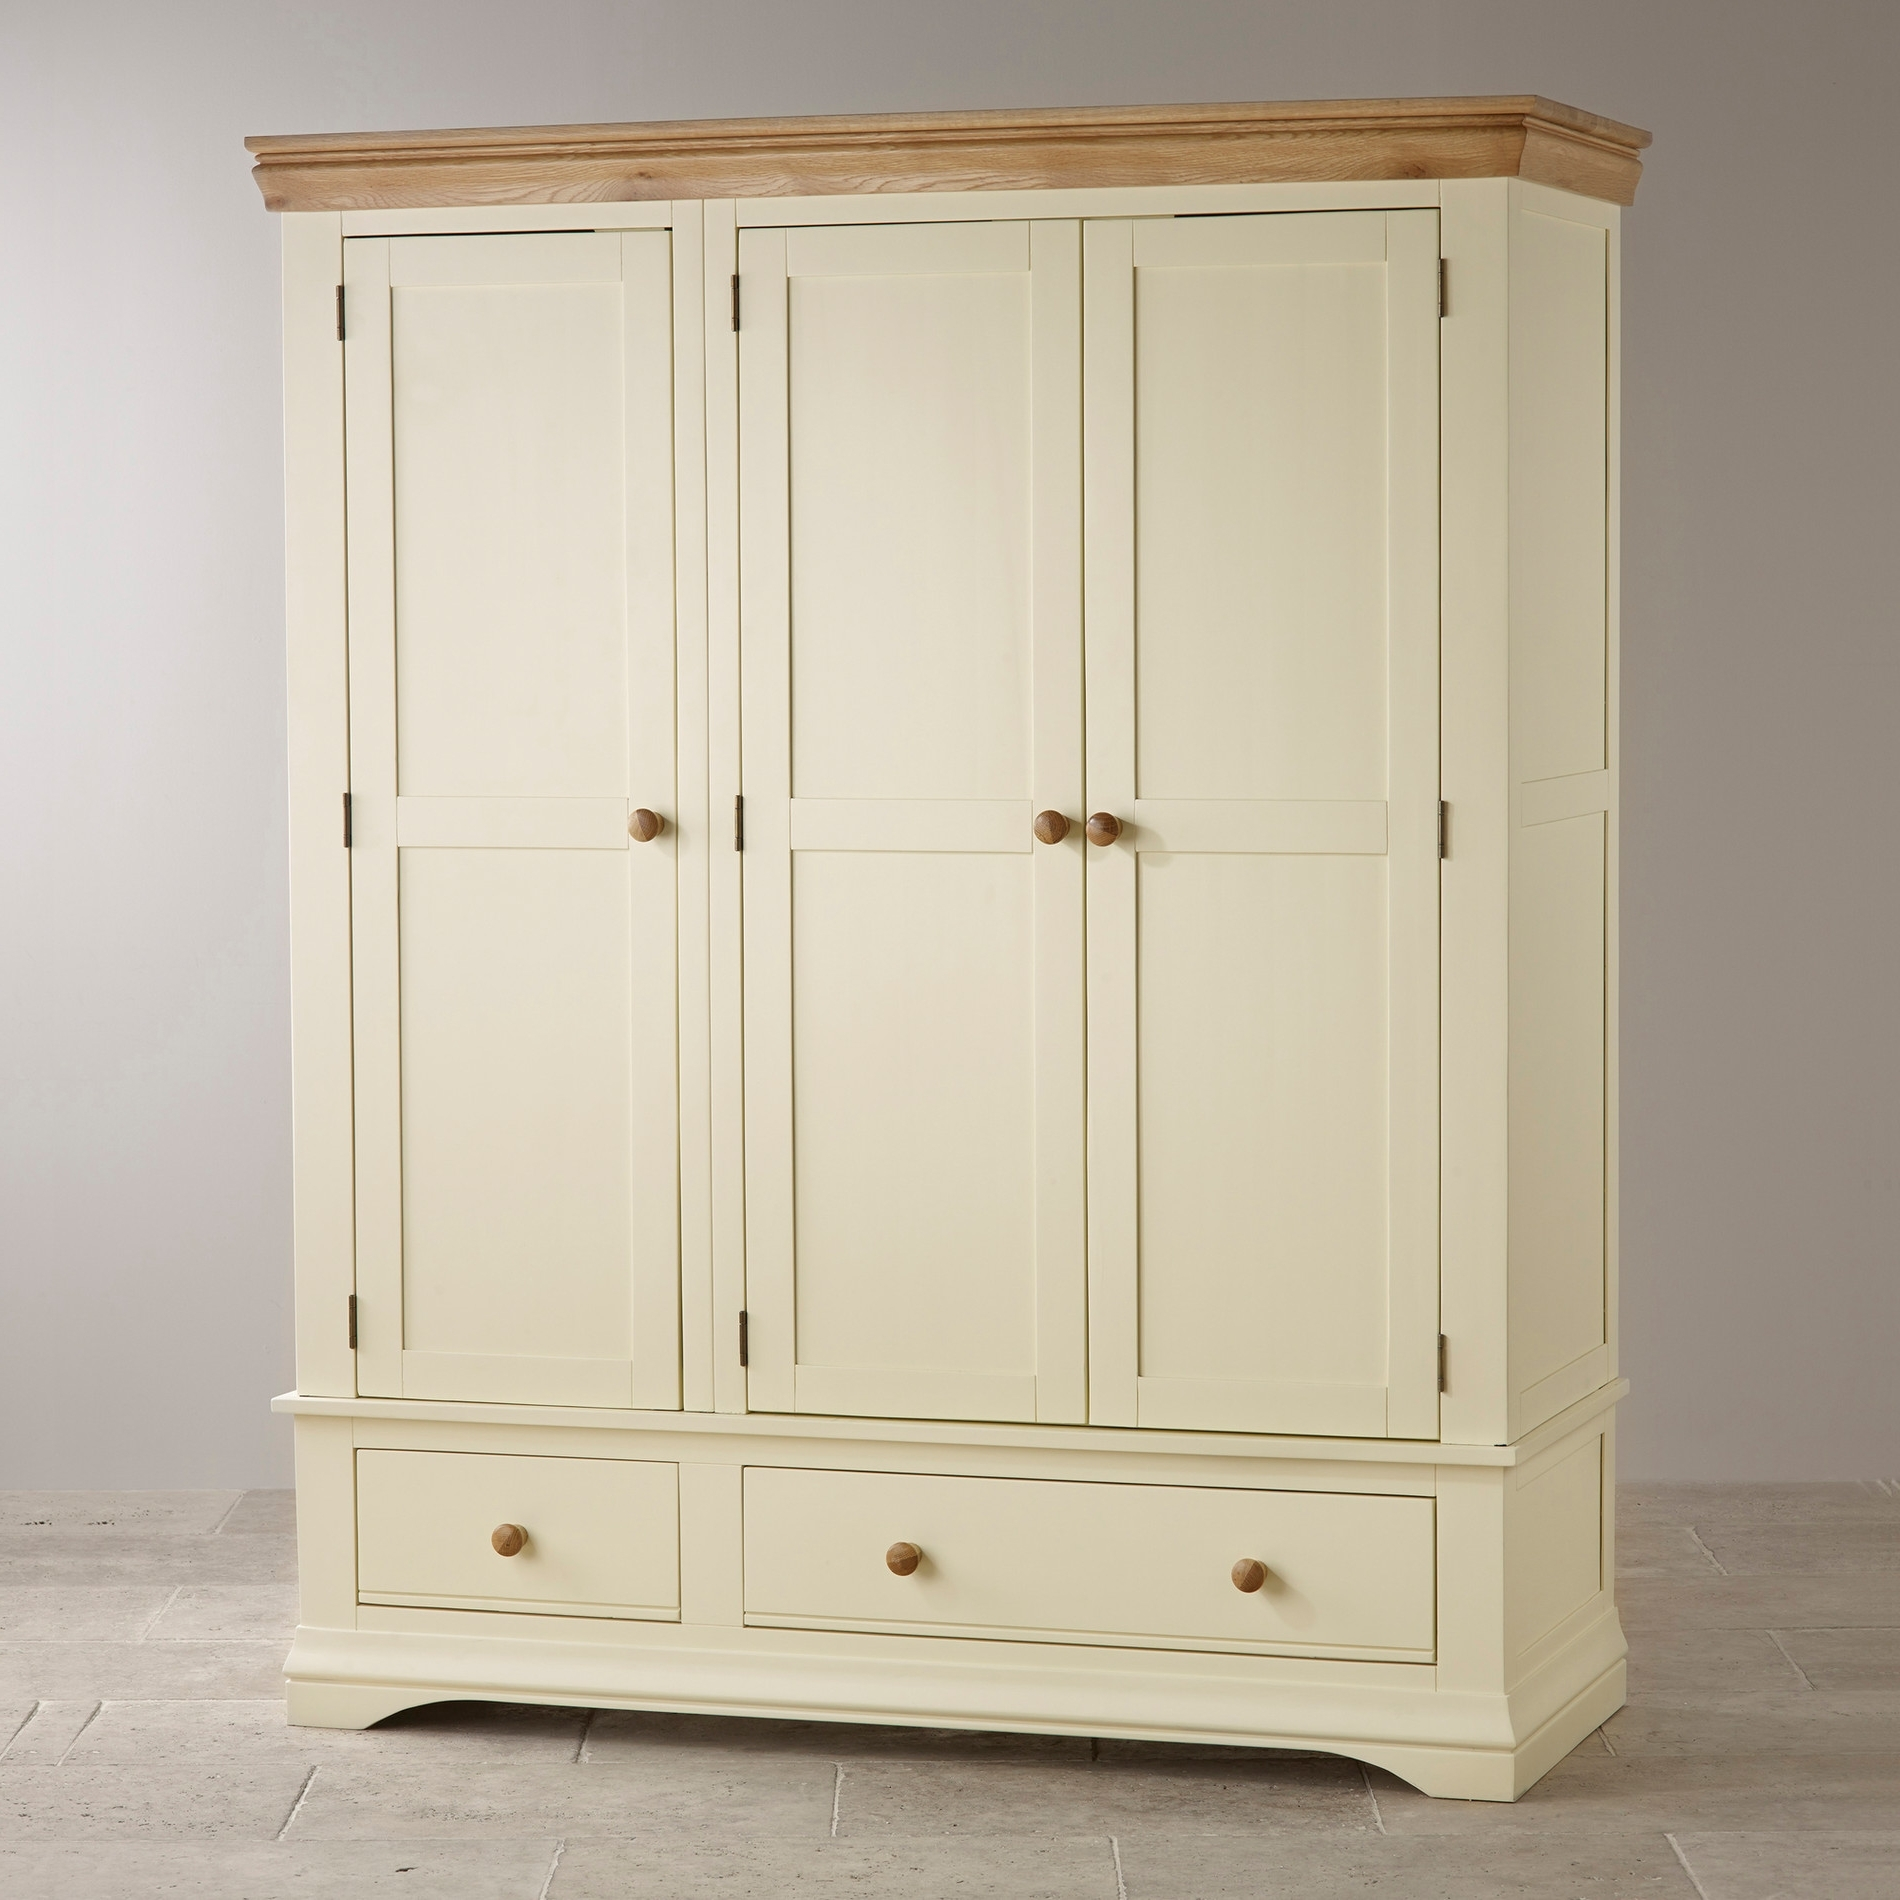 Cream Triple Wardrobes With Regard To Famous Country Cottage Natural Oak Triple Wardrobe – Cream Painted (View 4 of 15)